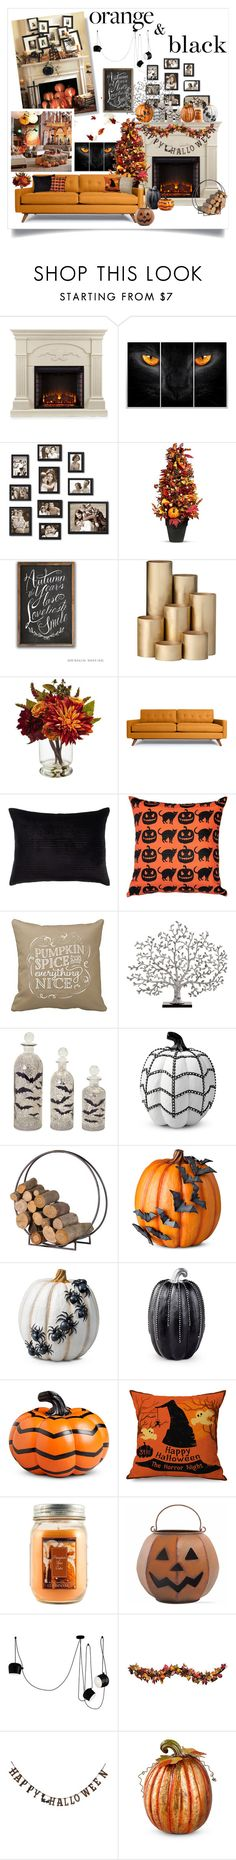 """""""Color Challenge: Orange & Black (Halloween Edition)"""" by dooda13 ❤ liked on Polyvore featuring interior, interiors, interior design, home, home decor, interior decorating, Southern Enterprises, Improvements, ferm LIVING and Nearly Natural"""